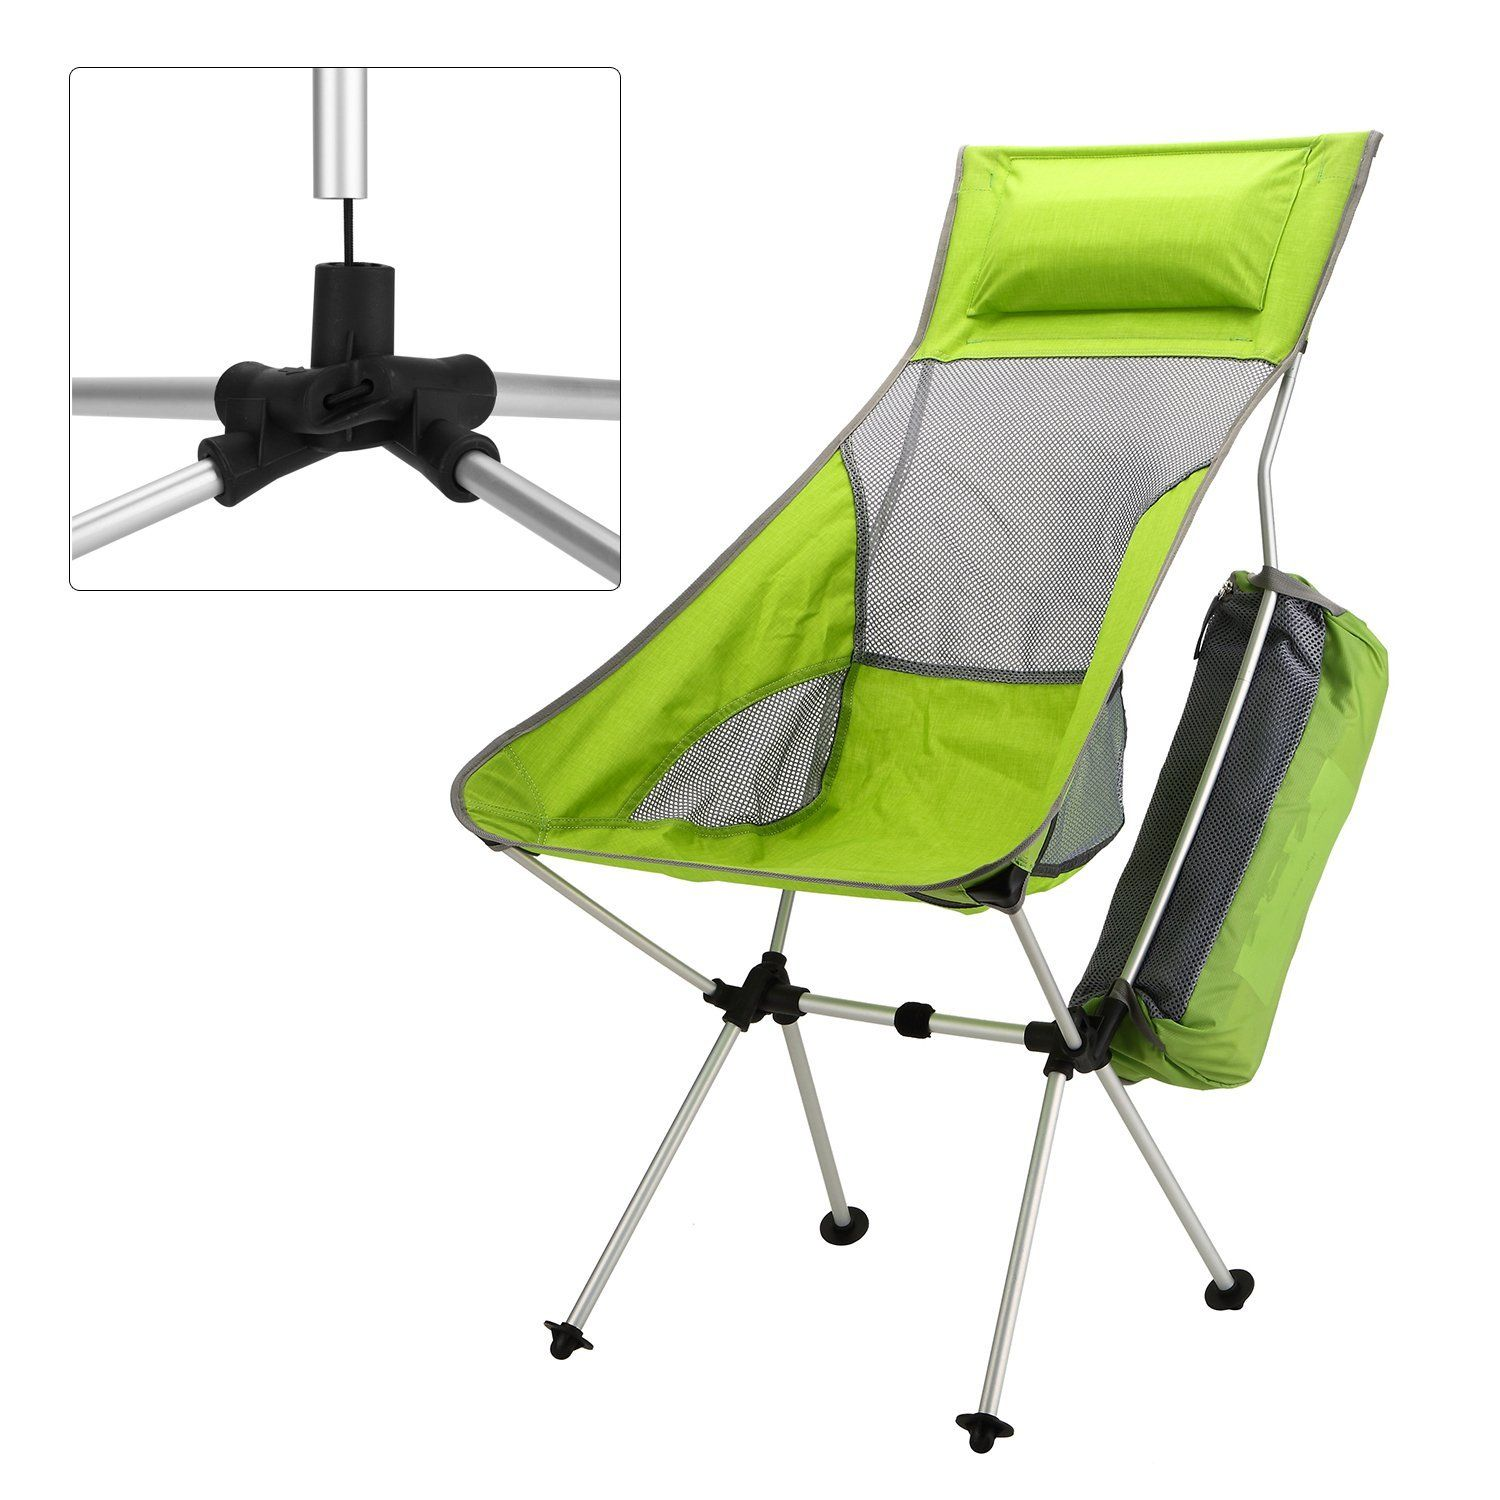 Small Folding Chairs For Camping